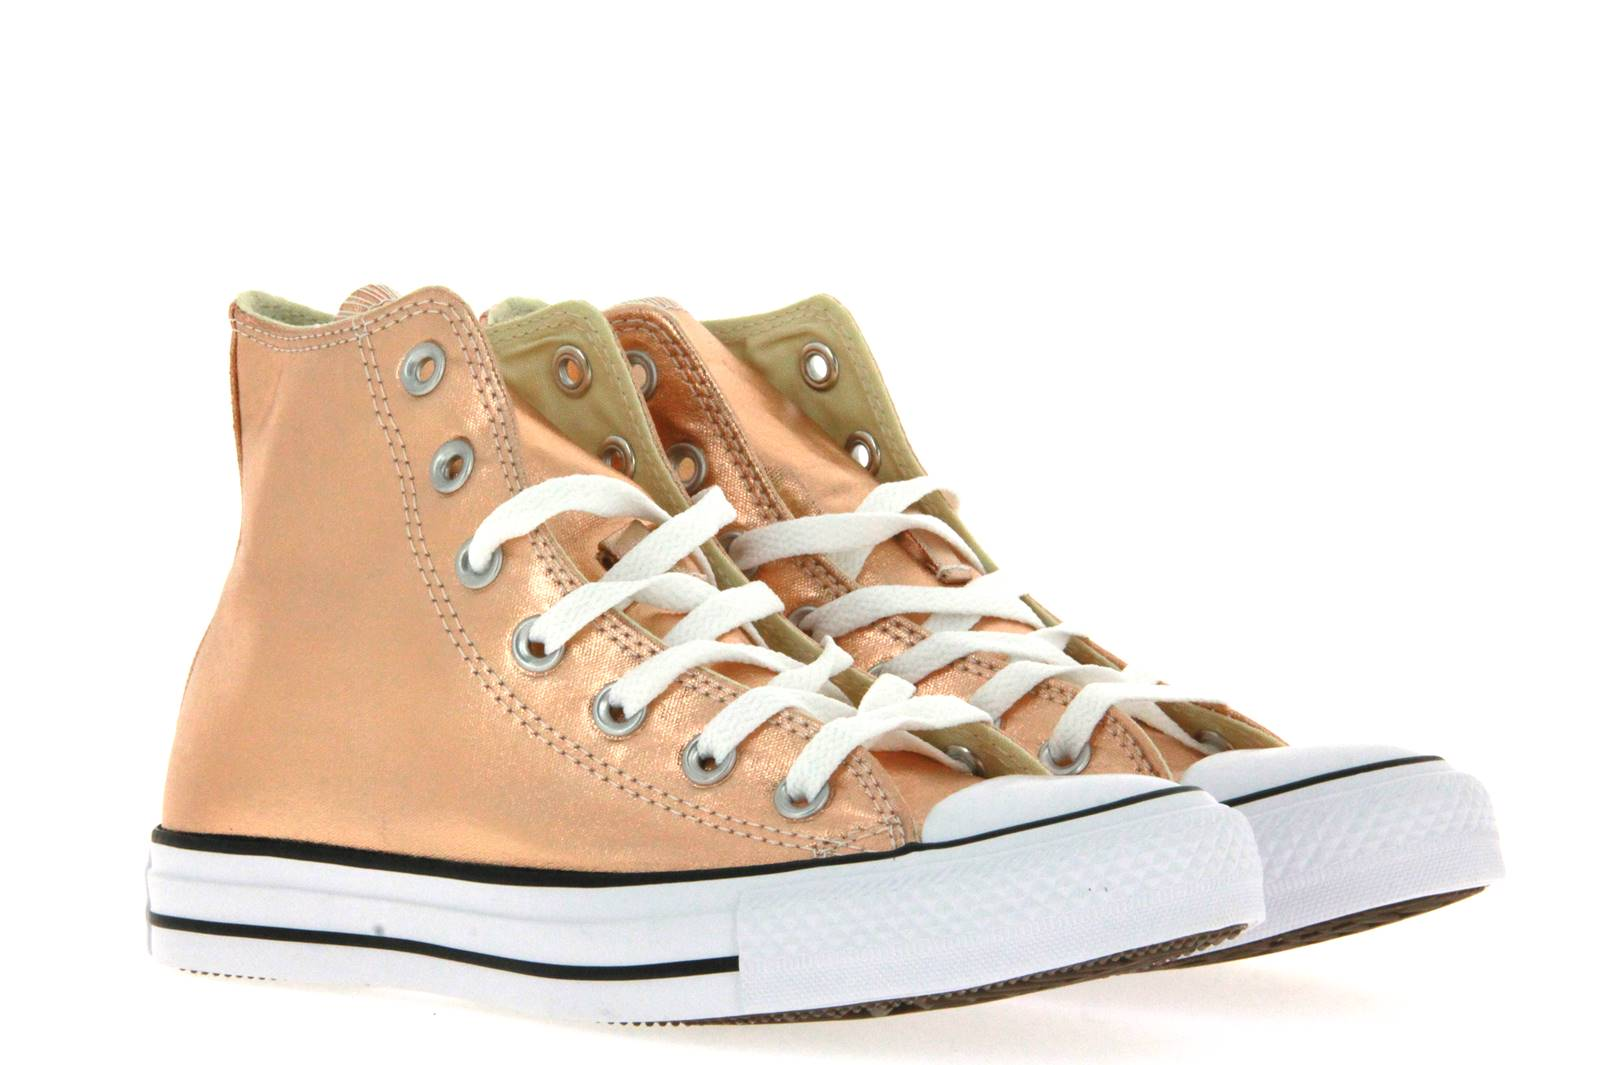 Converse ALL STAR CHUCK TAYLOR CTAS HI METALLIC SUNSET GLOW WIHTE (36)